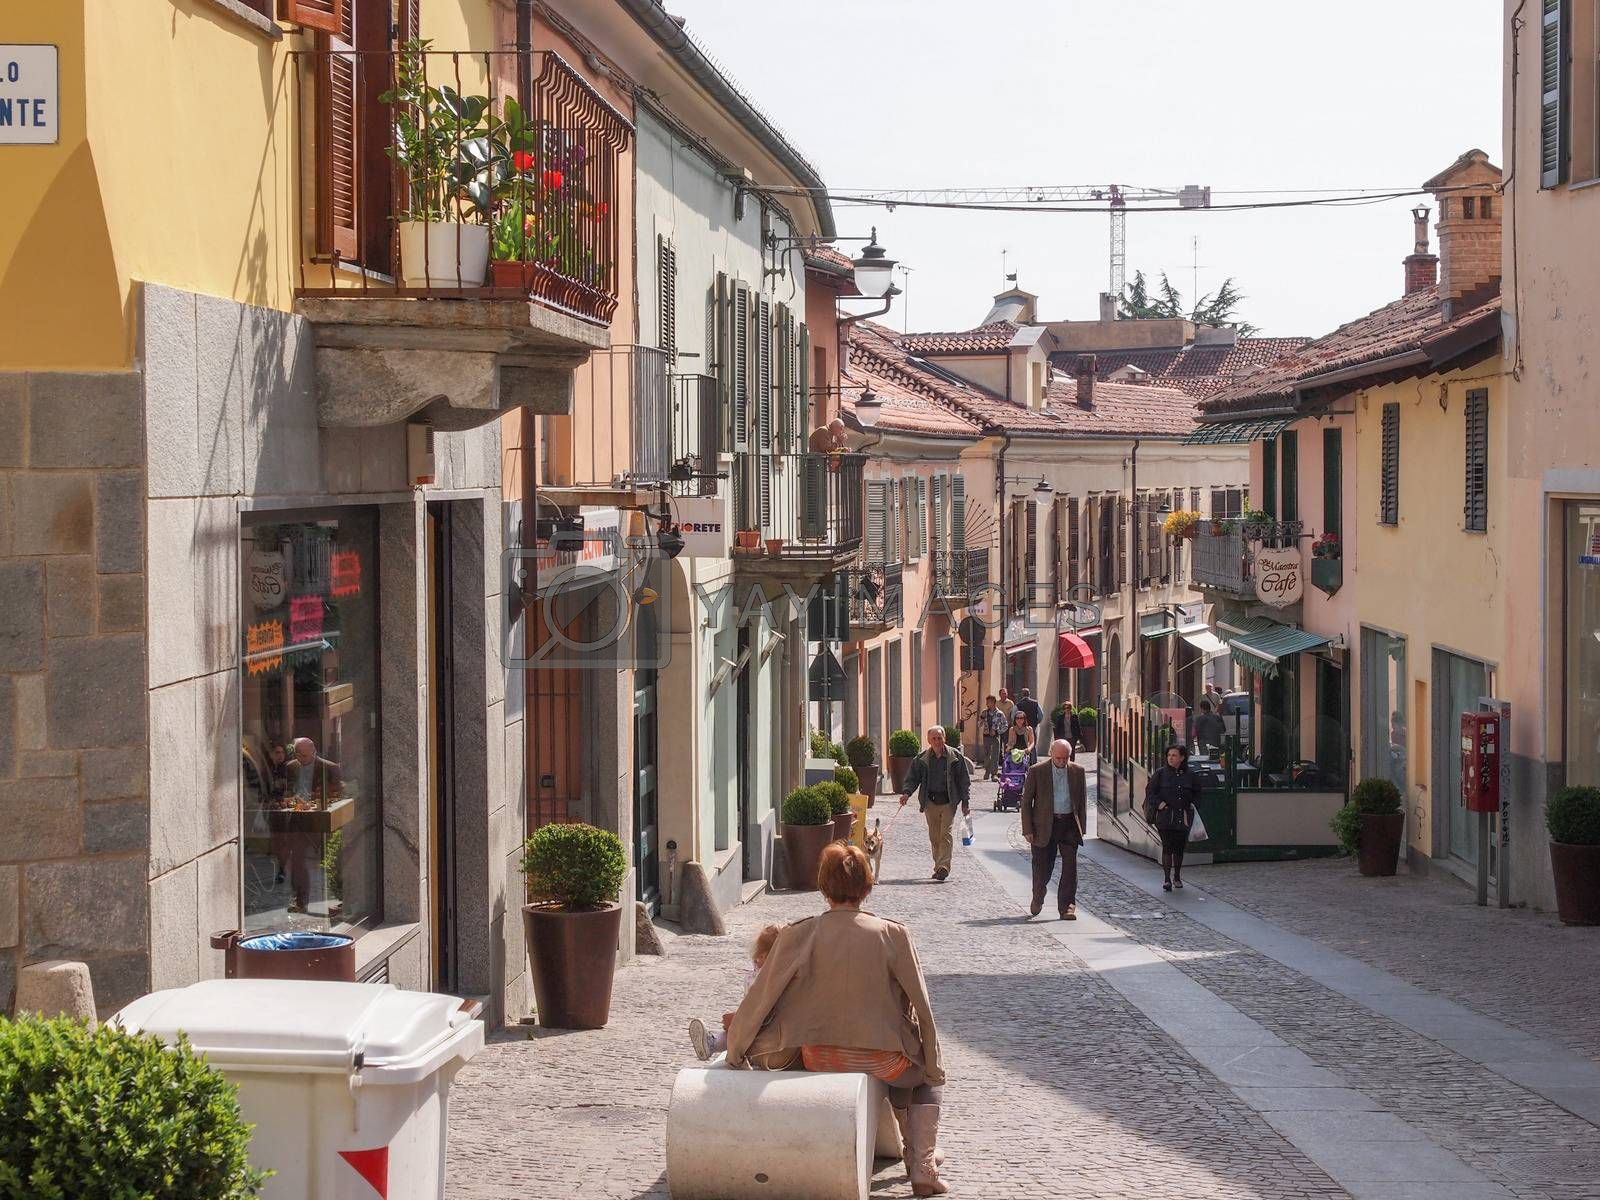 RIVOLI, ITALY - APRIL 09, 2014: People visiting the old town city centre